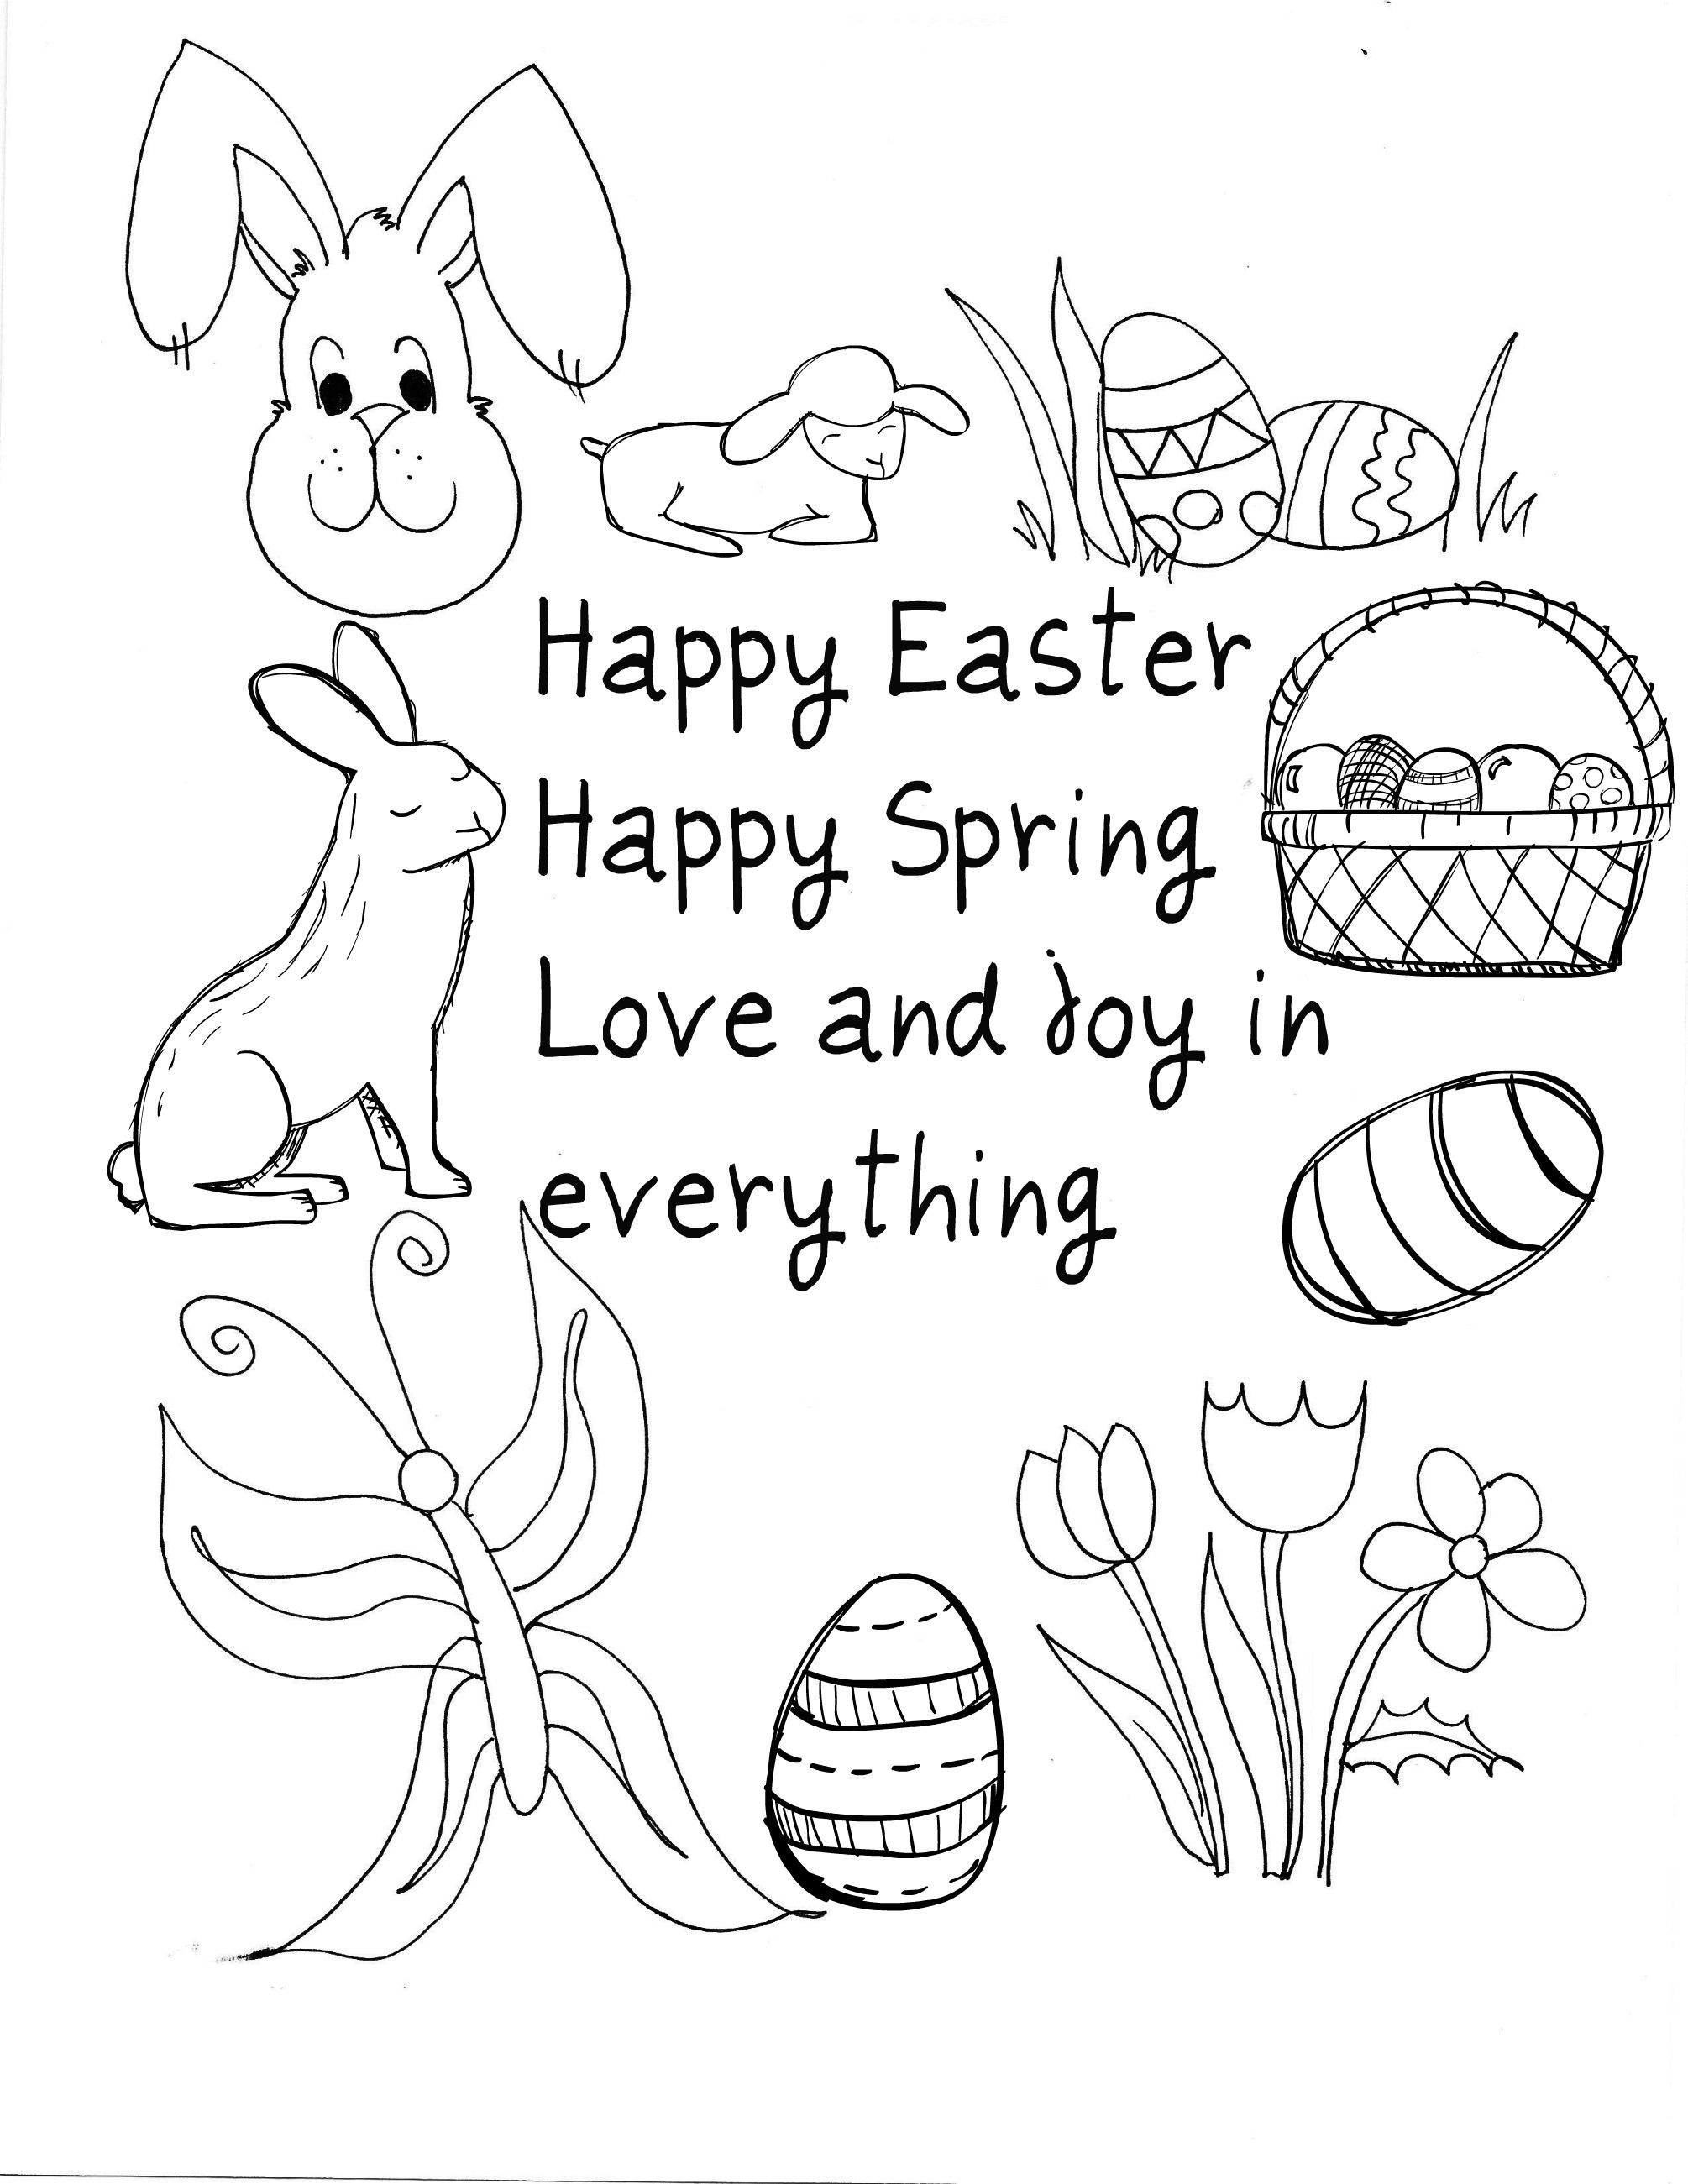 10 Easter Printable Cards To Color I Just Clicked On The